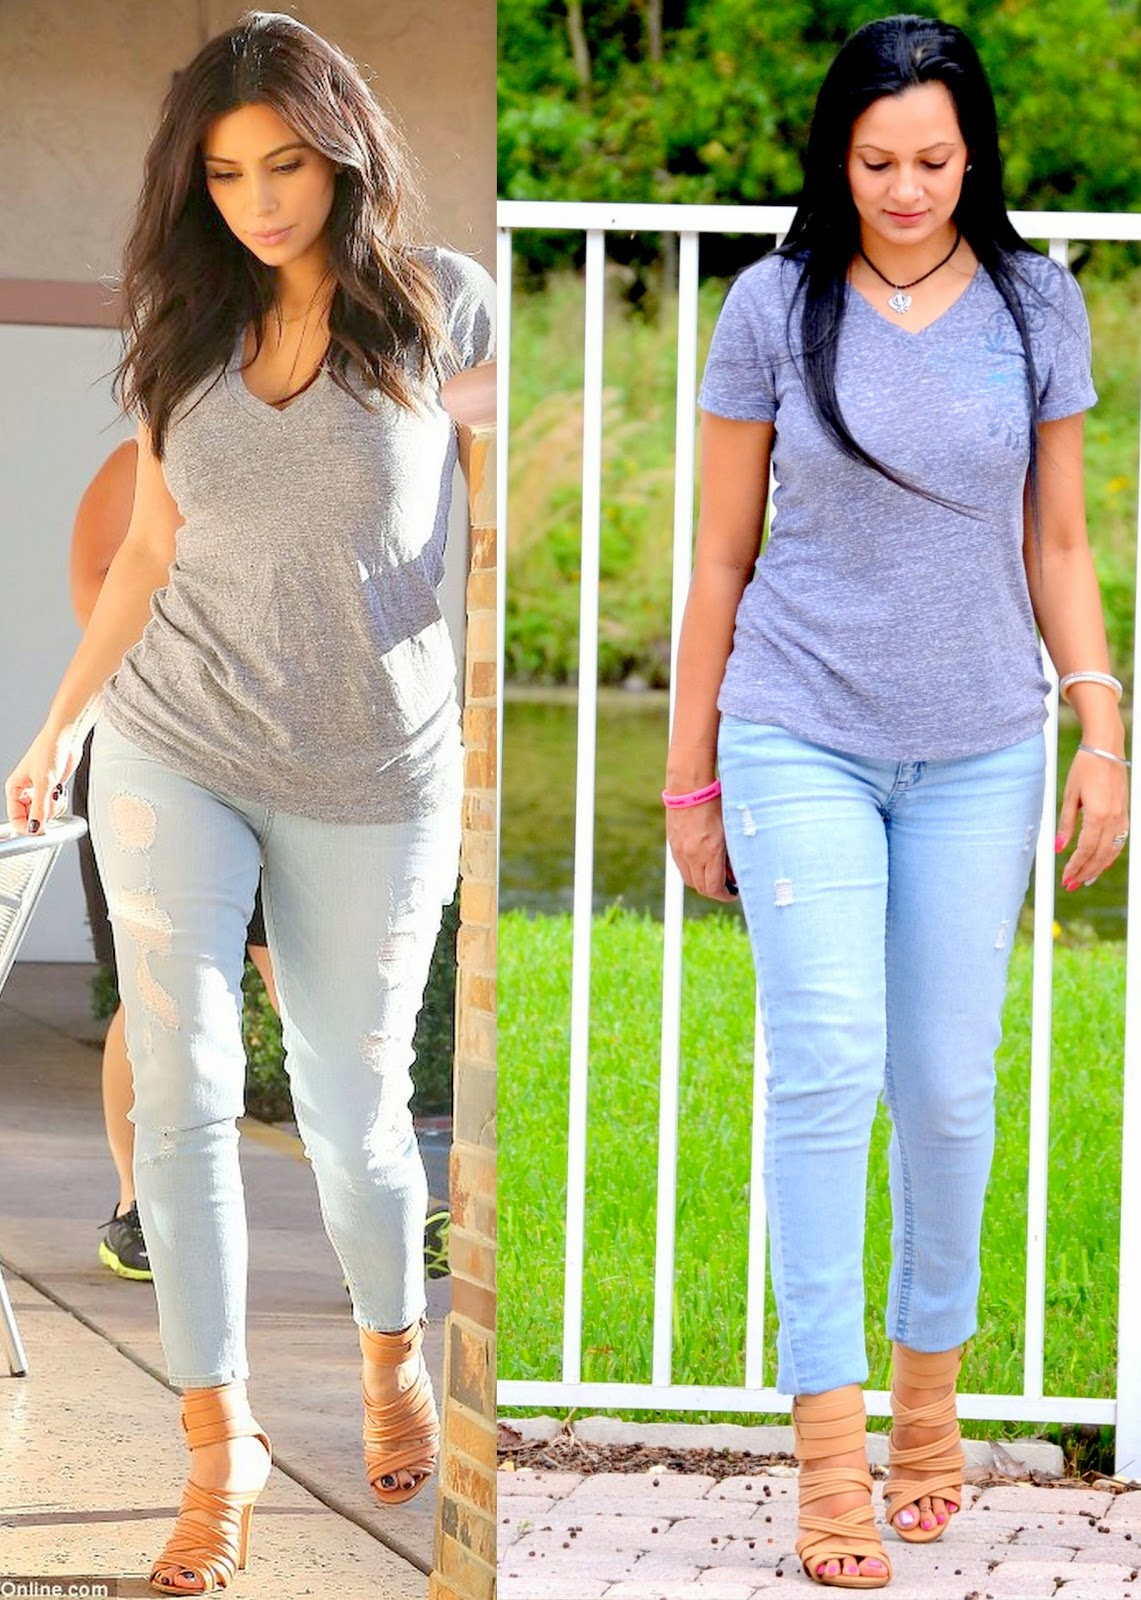 Kim Kardashion Casual Look For Less www.sandysandhu.co